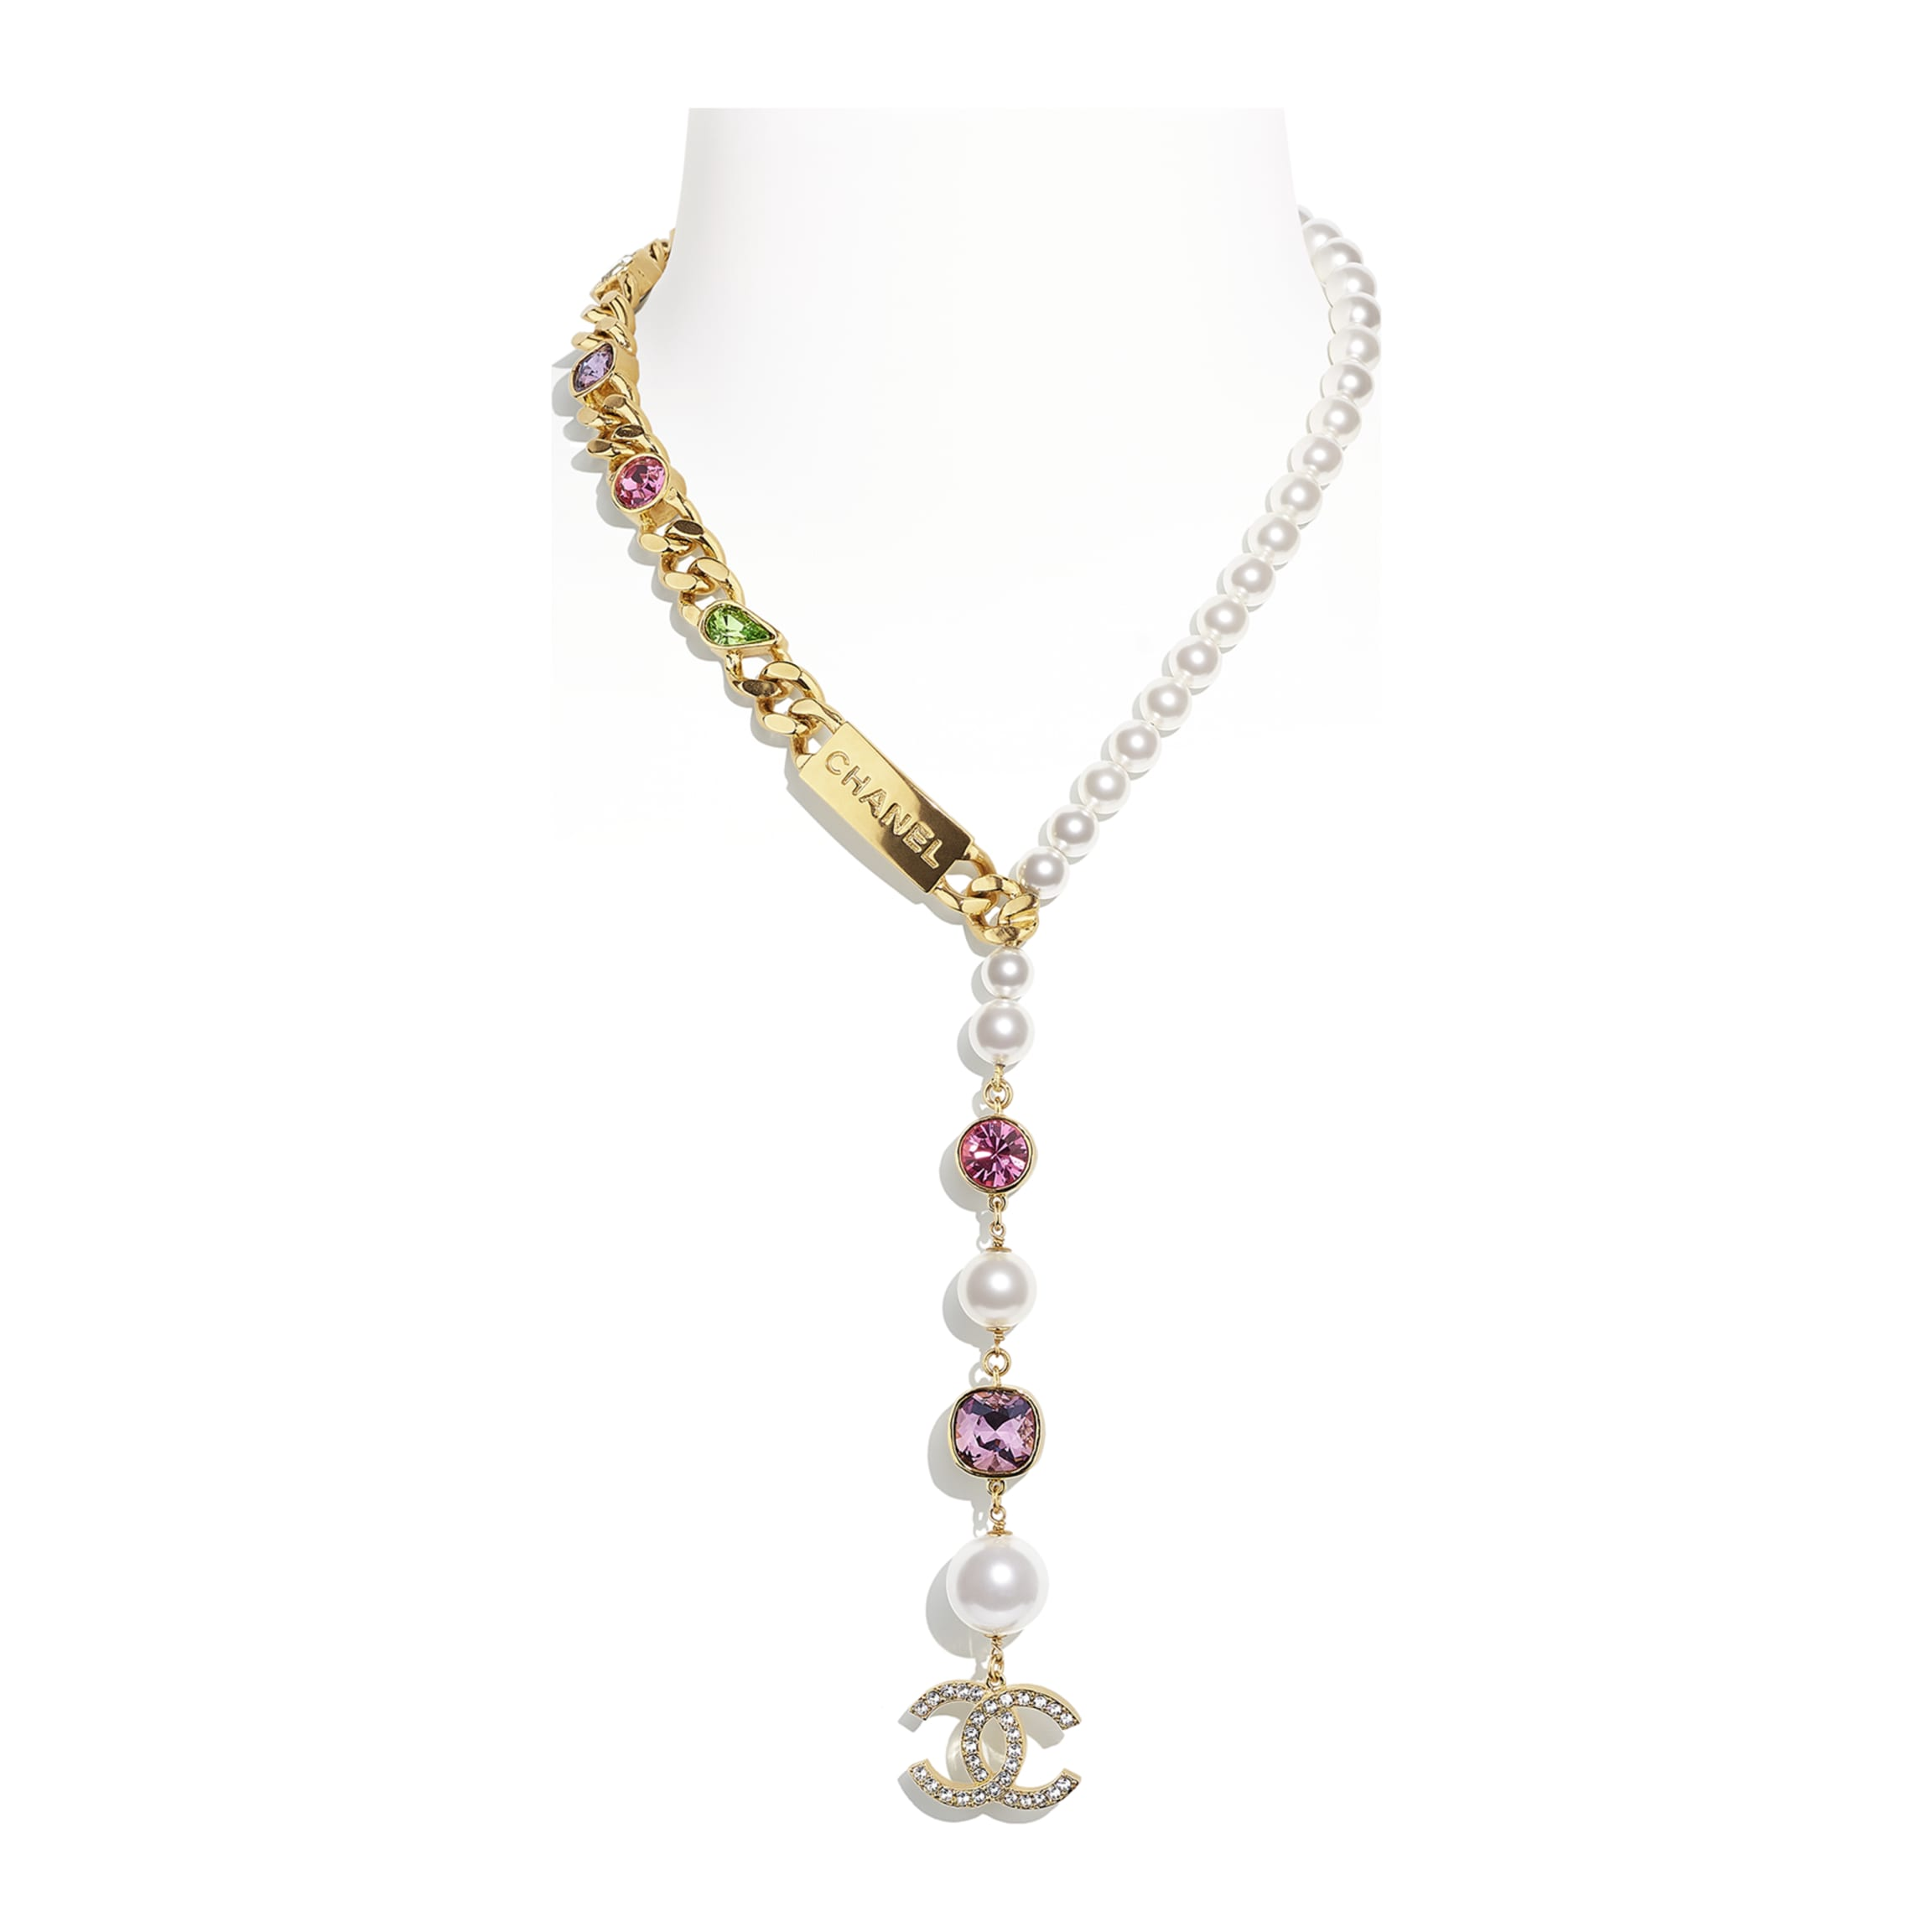 20 inch Necklace extends to 23 inches 1.5/'/' focal 3/'/' chain extender JB062 Dichroic Glass Necklace w Gold Blue Pearls Ribbed Gold Spacers